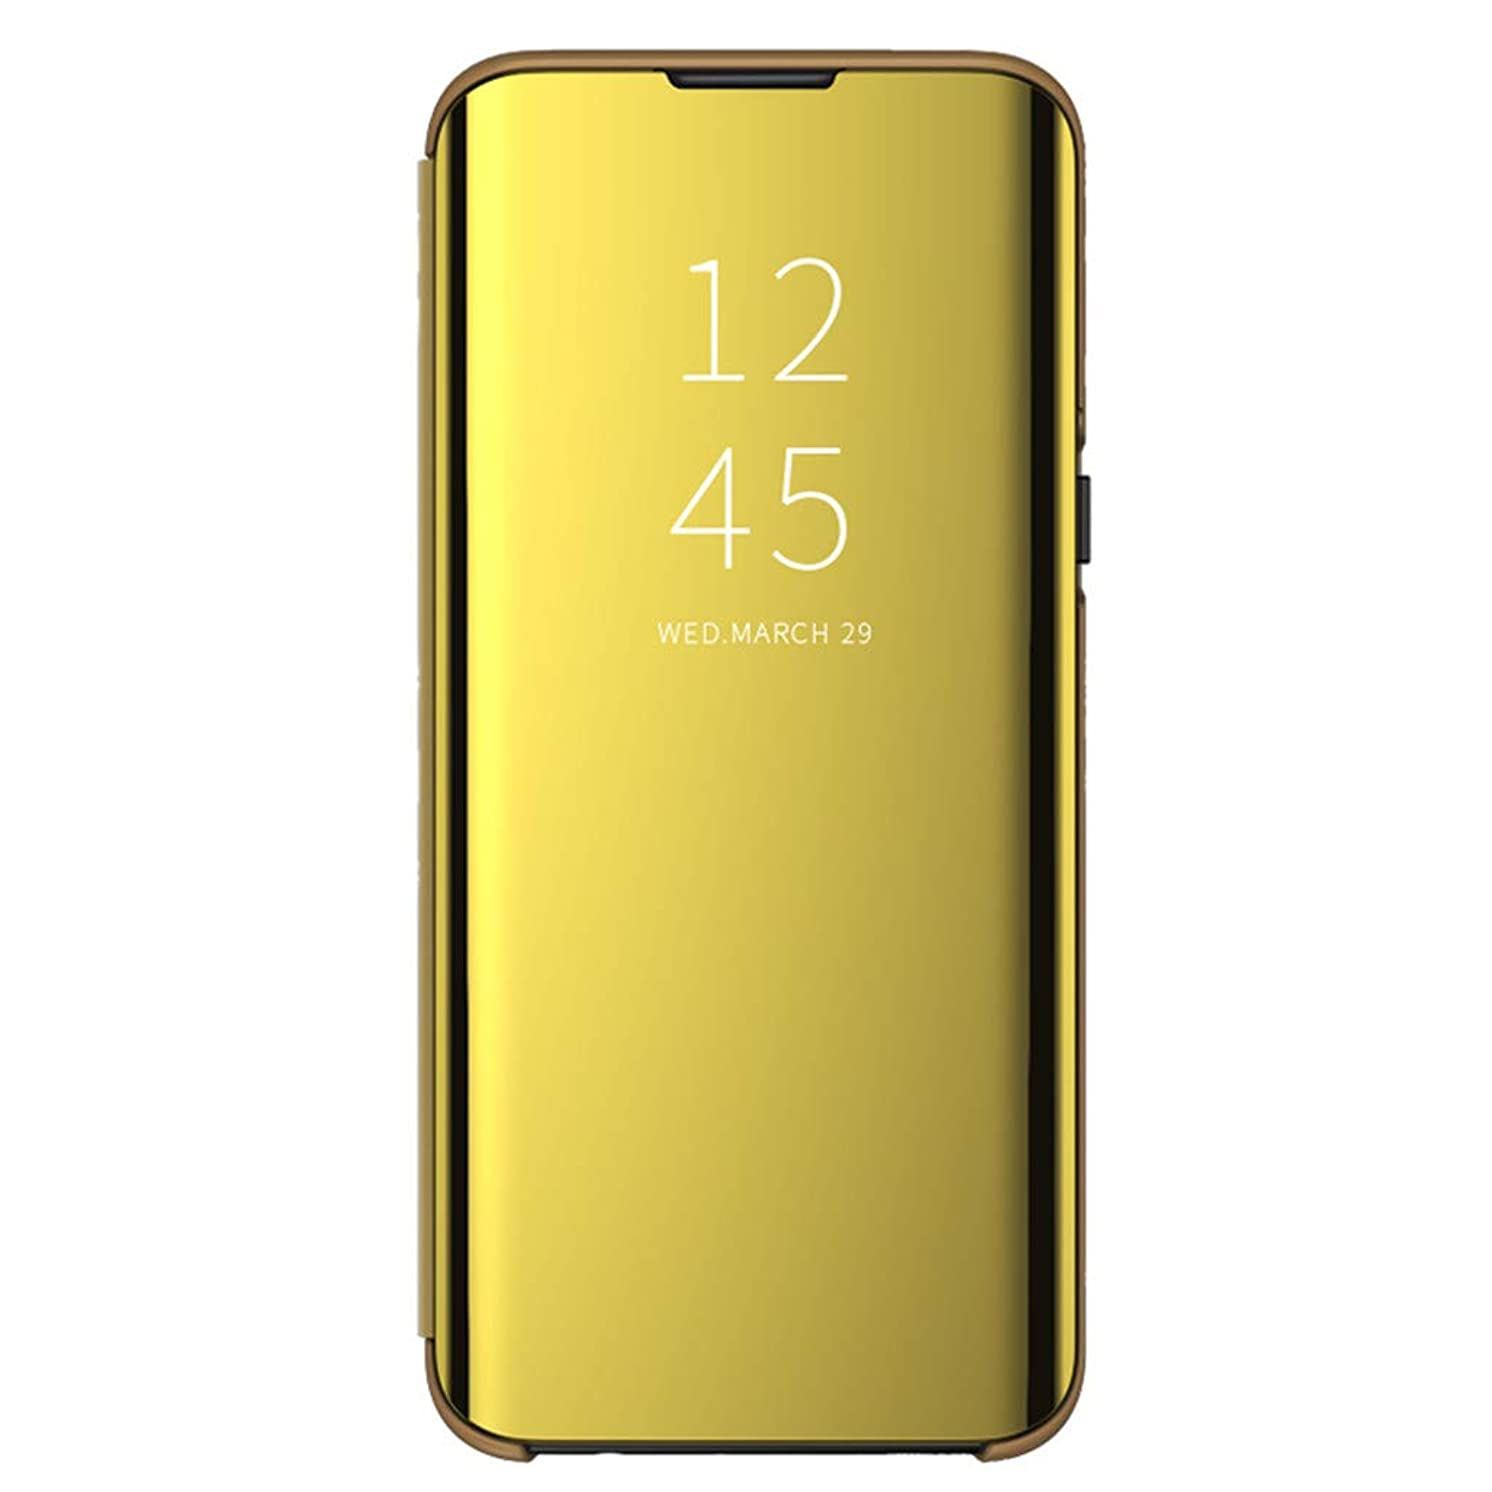 Kariwell Smart Flip Stand Case Cover - Luxury Smart Sleep Wake UP Flip Leather Case Cover for Samsung Galaxy S10 6.1inch (Gold)